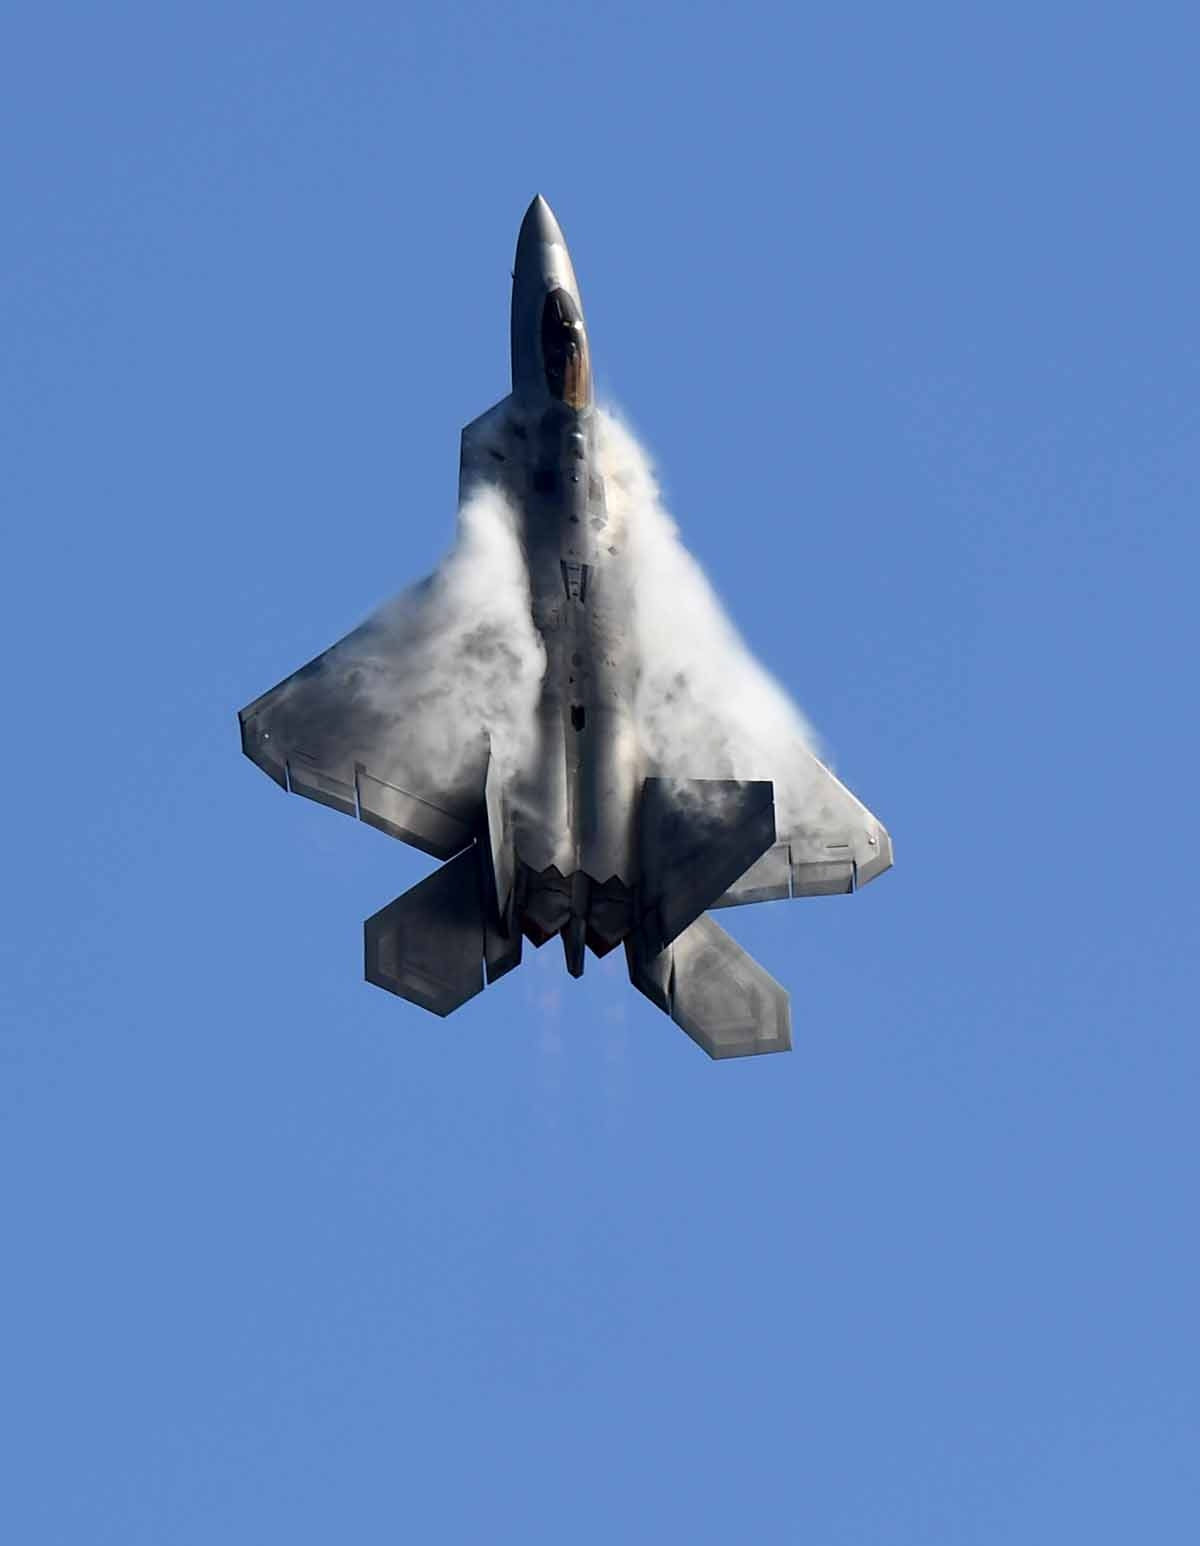 A US Air Force F-22 Raptor flies during the Australian International Airshow in Melbourne on March 5, 2017.